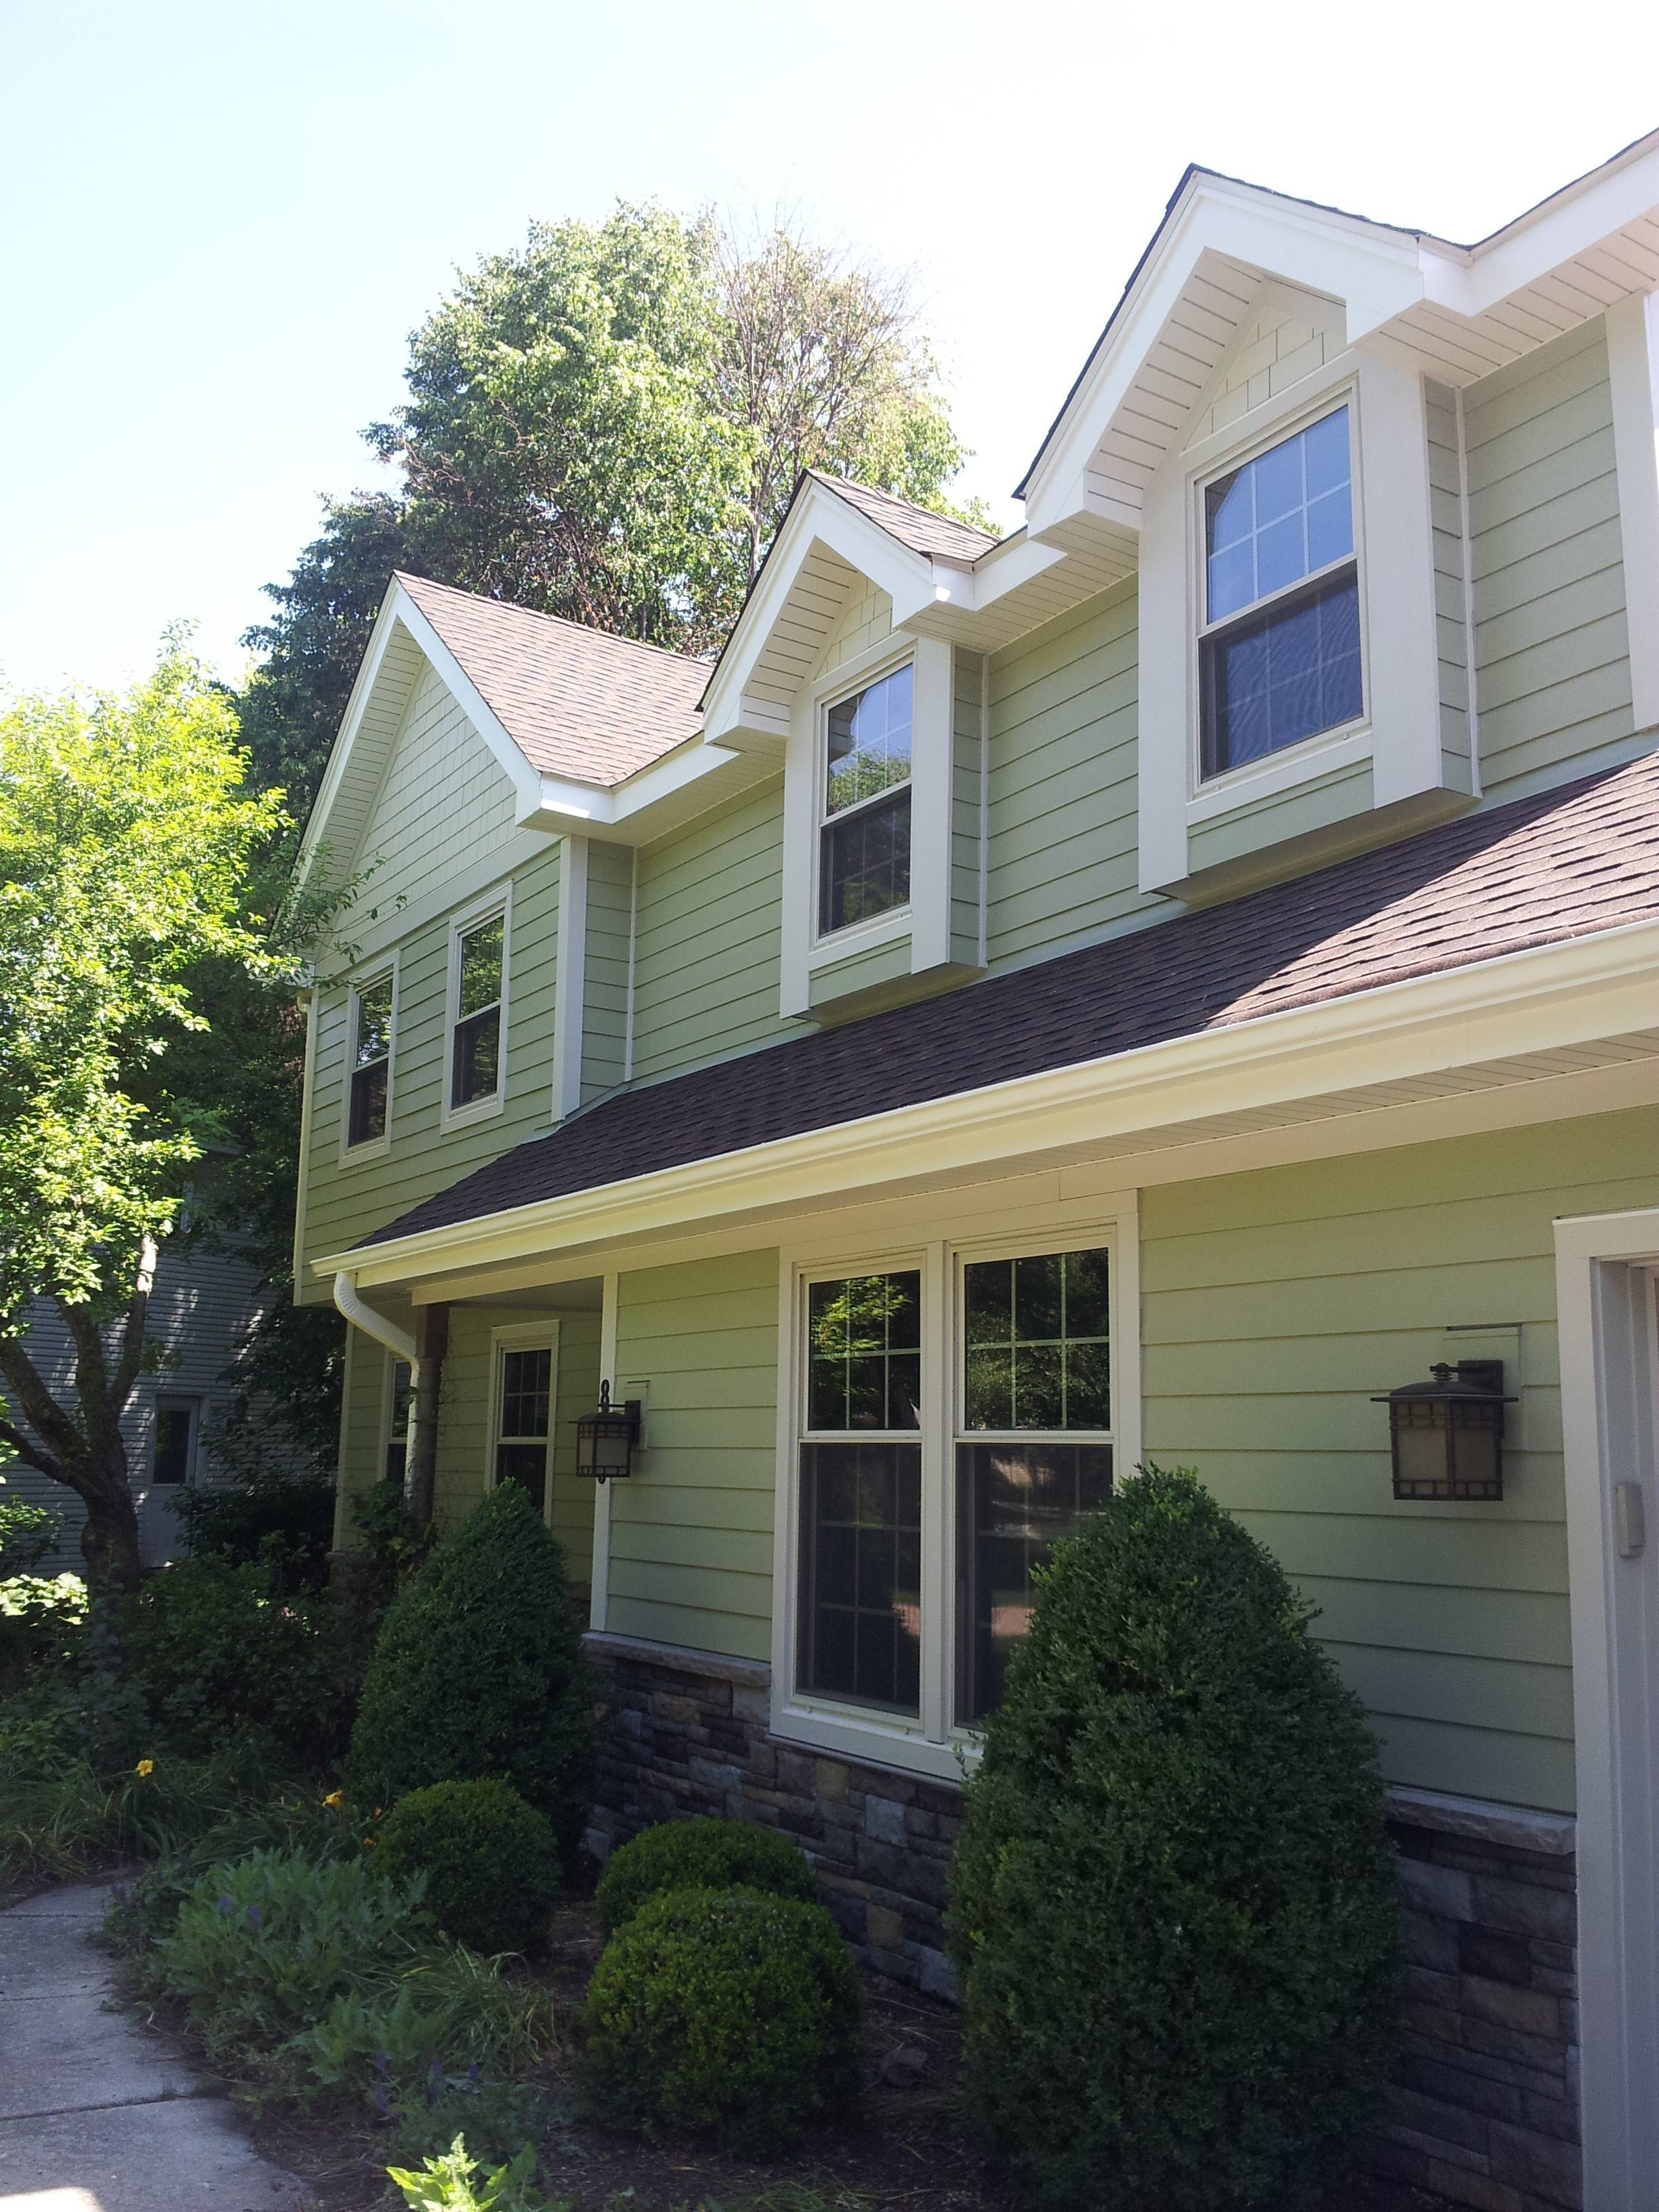 Top 5 Problems That Indicate Your Home Needs A Siding